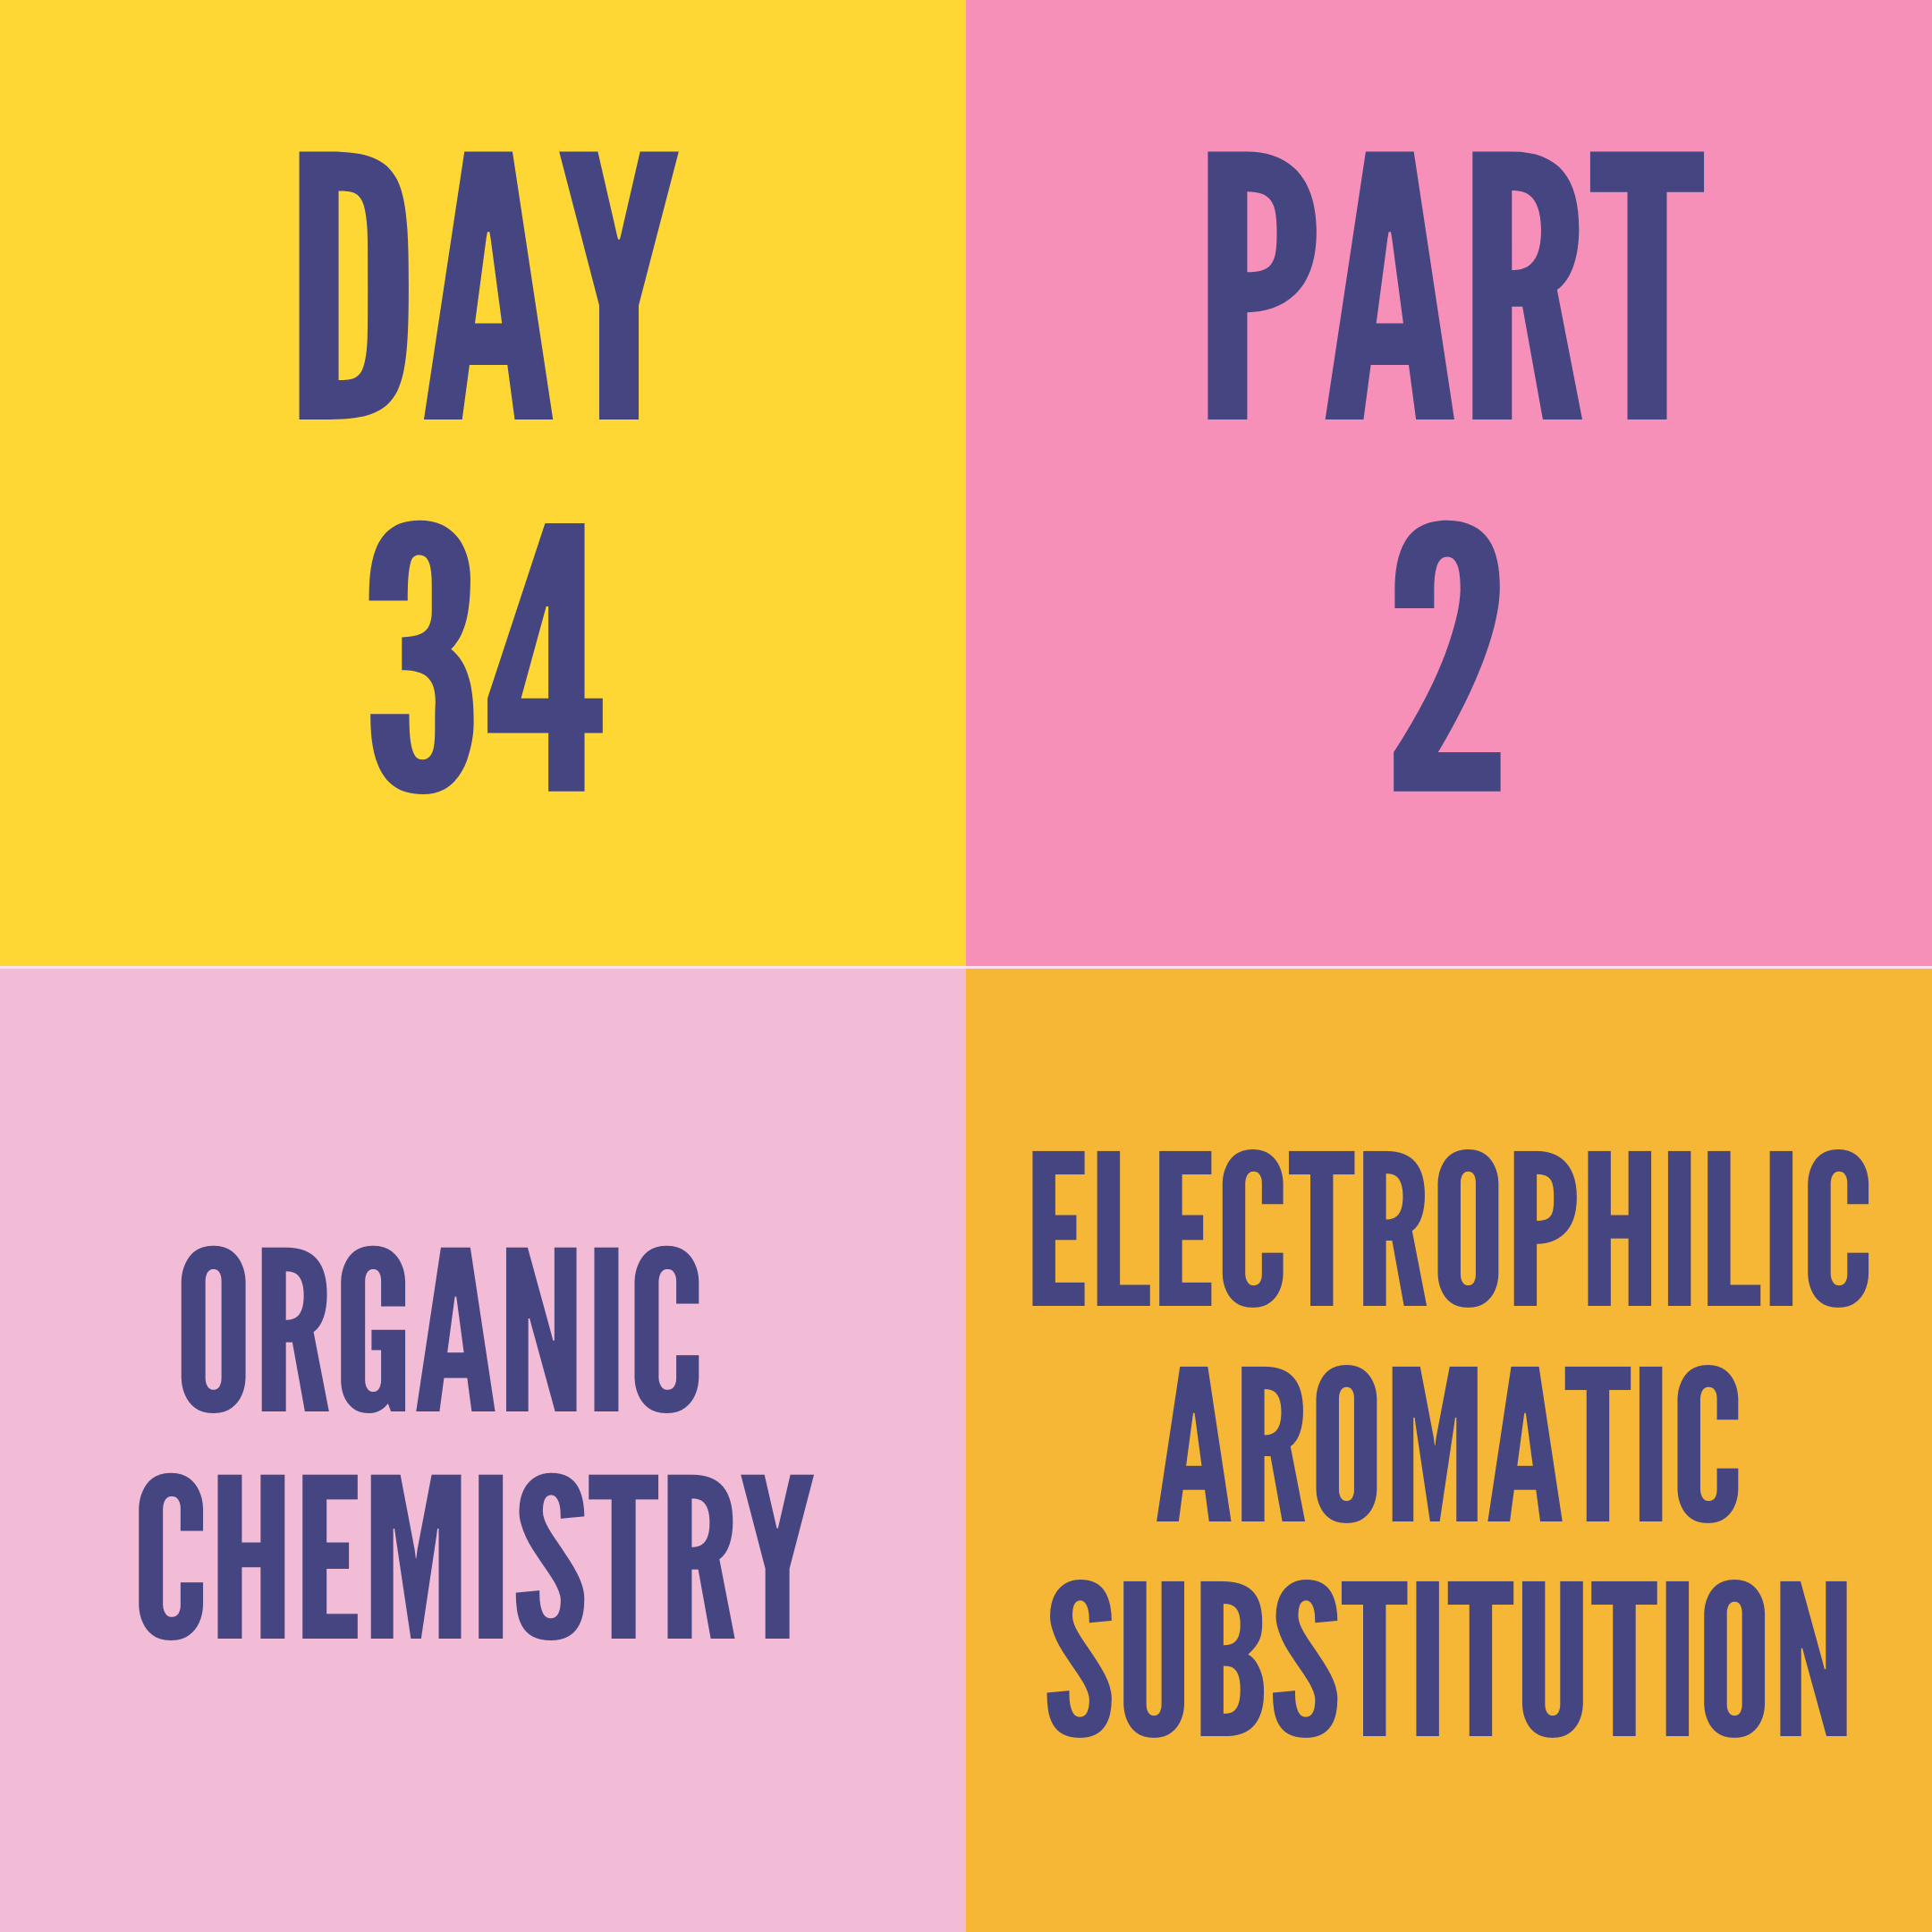 DAY-34 PART-2 ELECTROPHILIC AROMATIC SUBSTITUTION